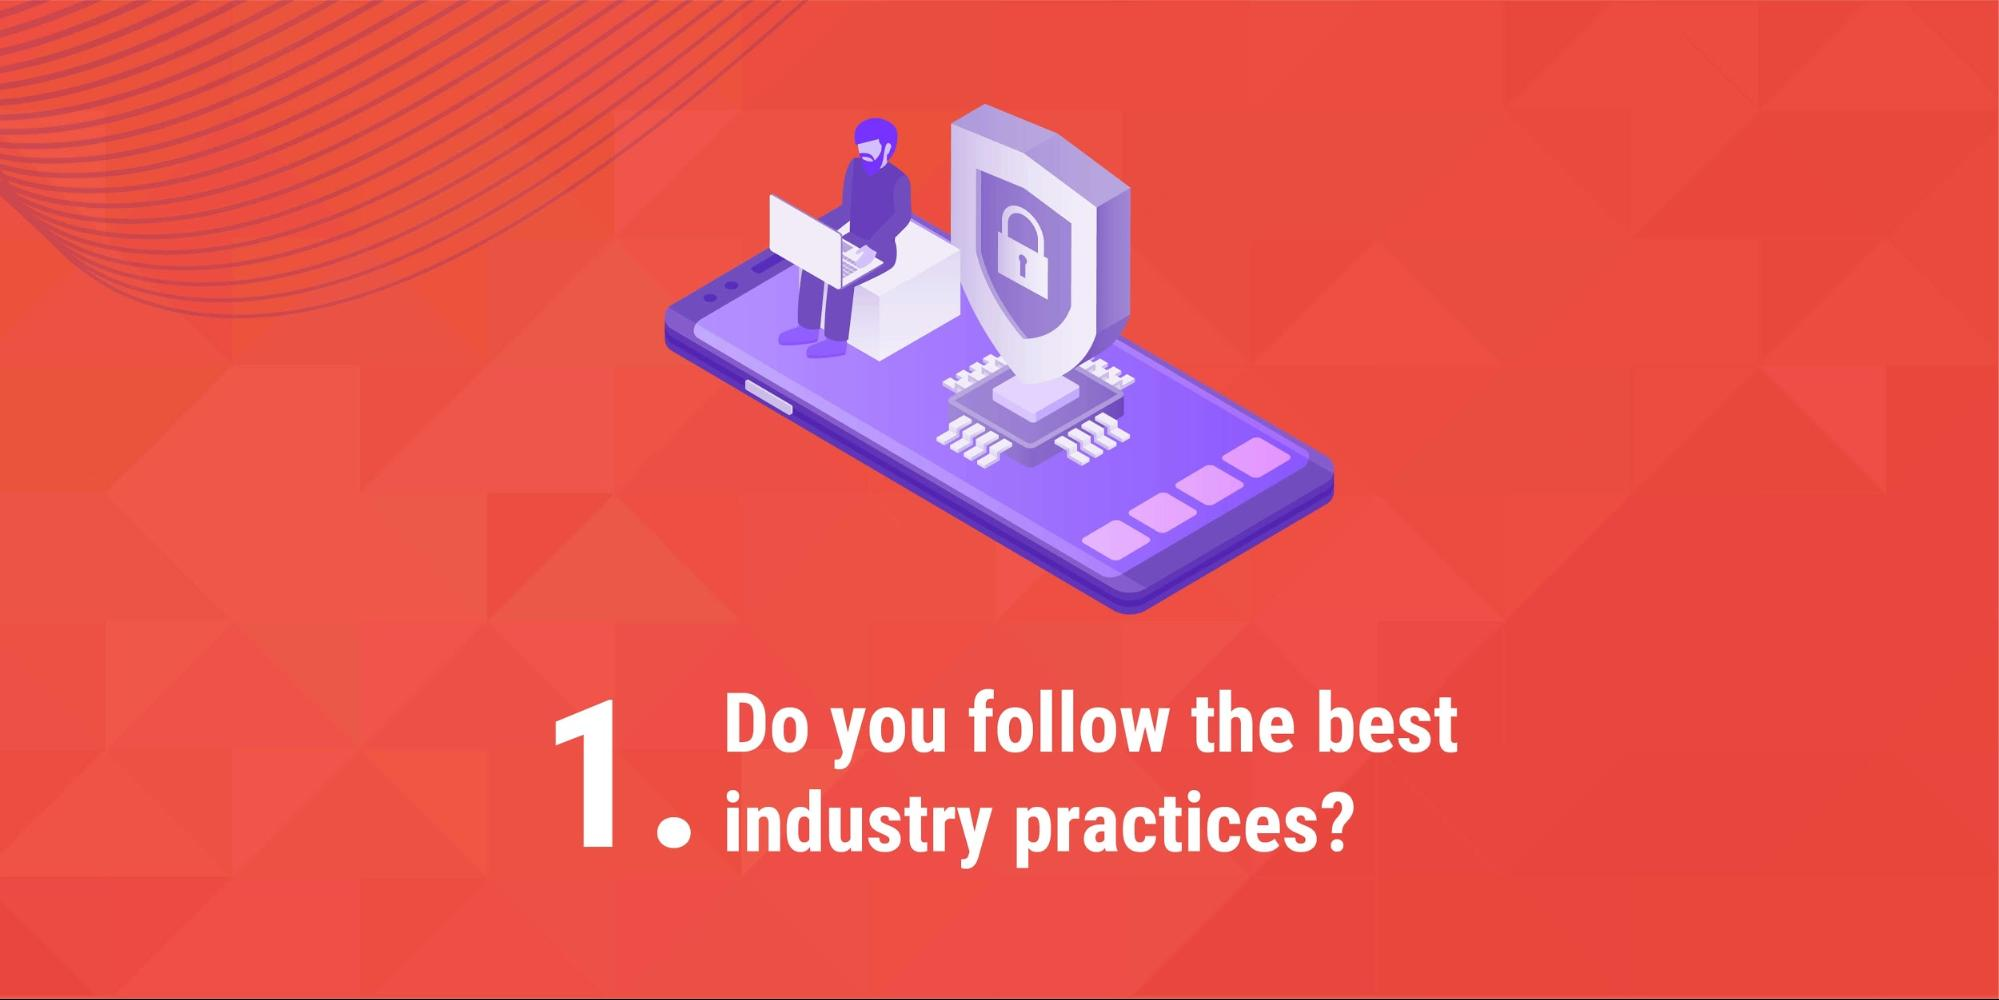 1. Do you follow the best industry practices?